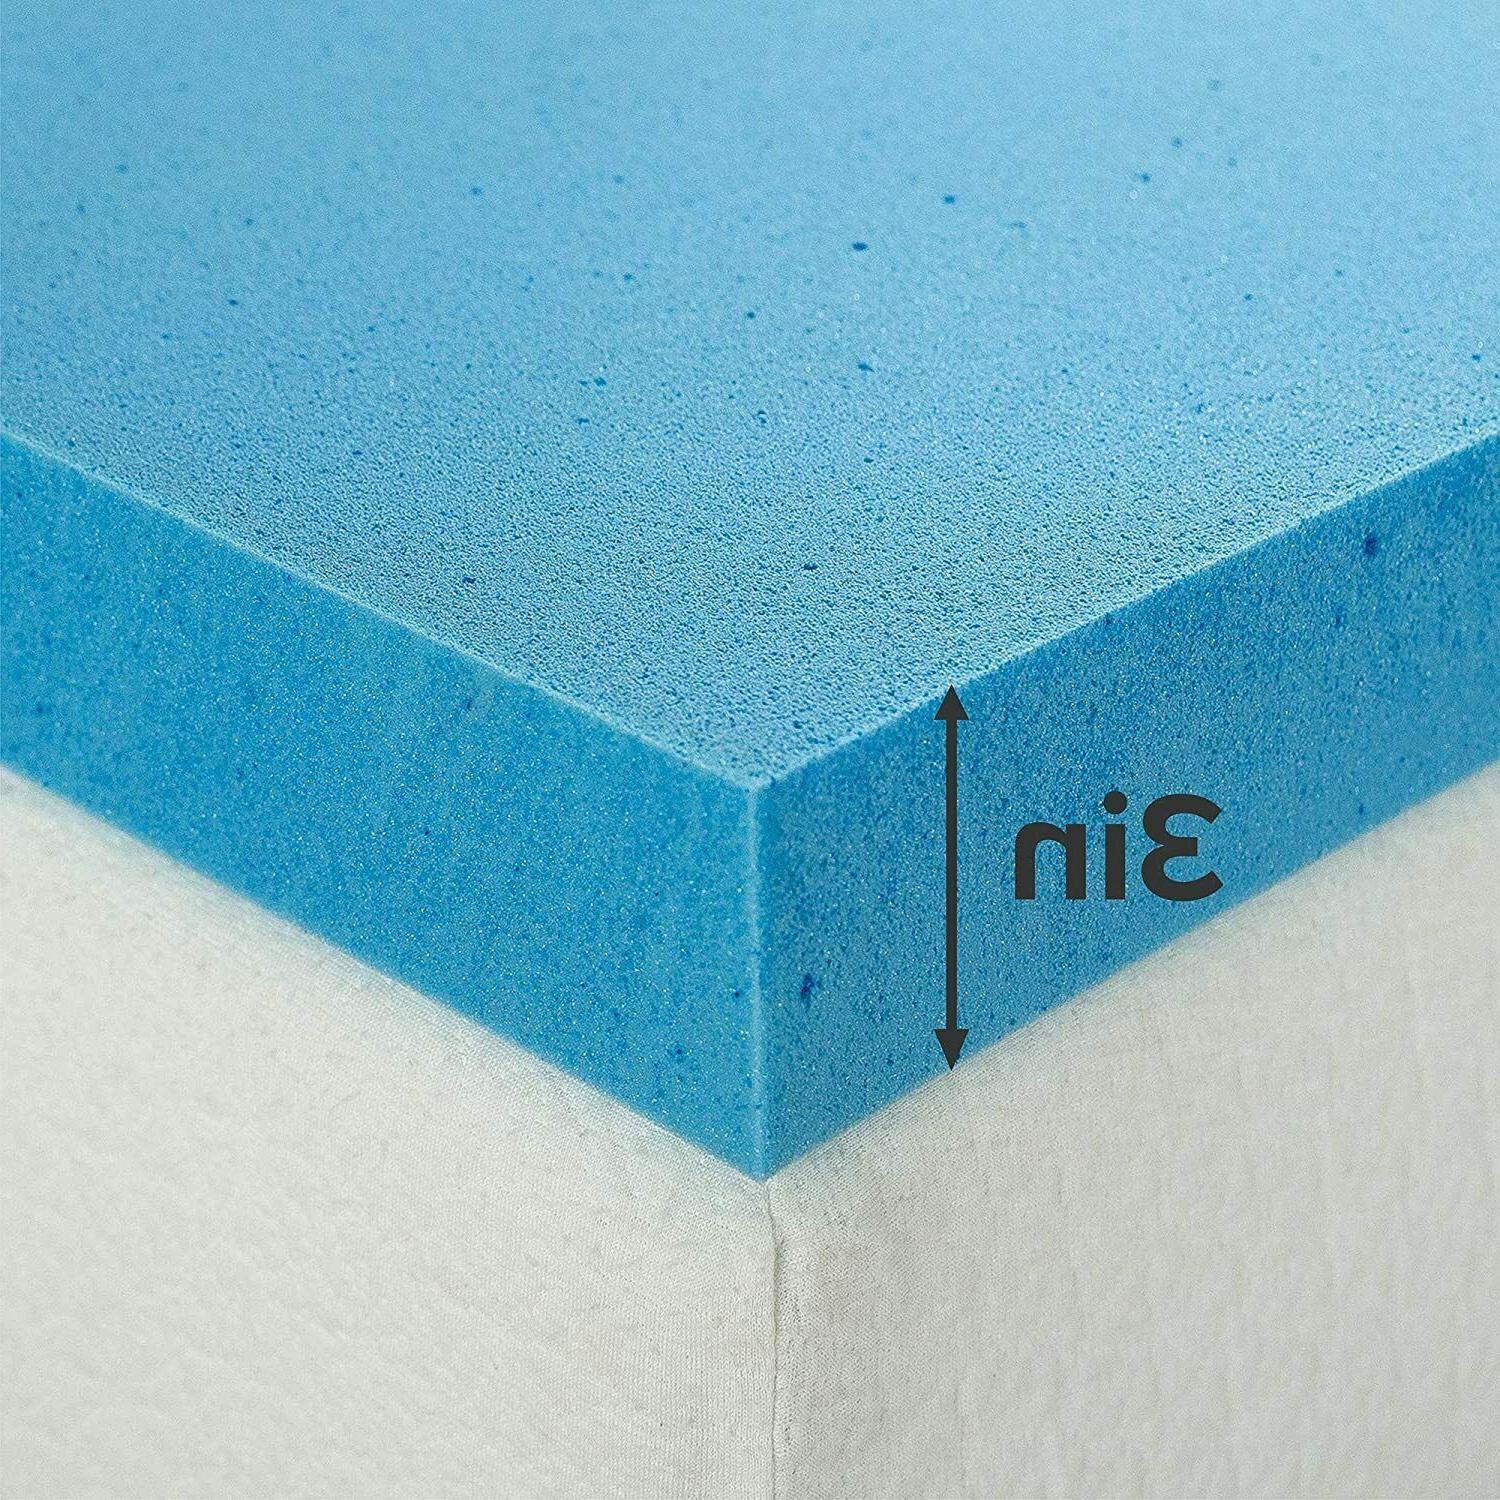 Zinus Cooling Gel Memory Mattress Toppers, inch